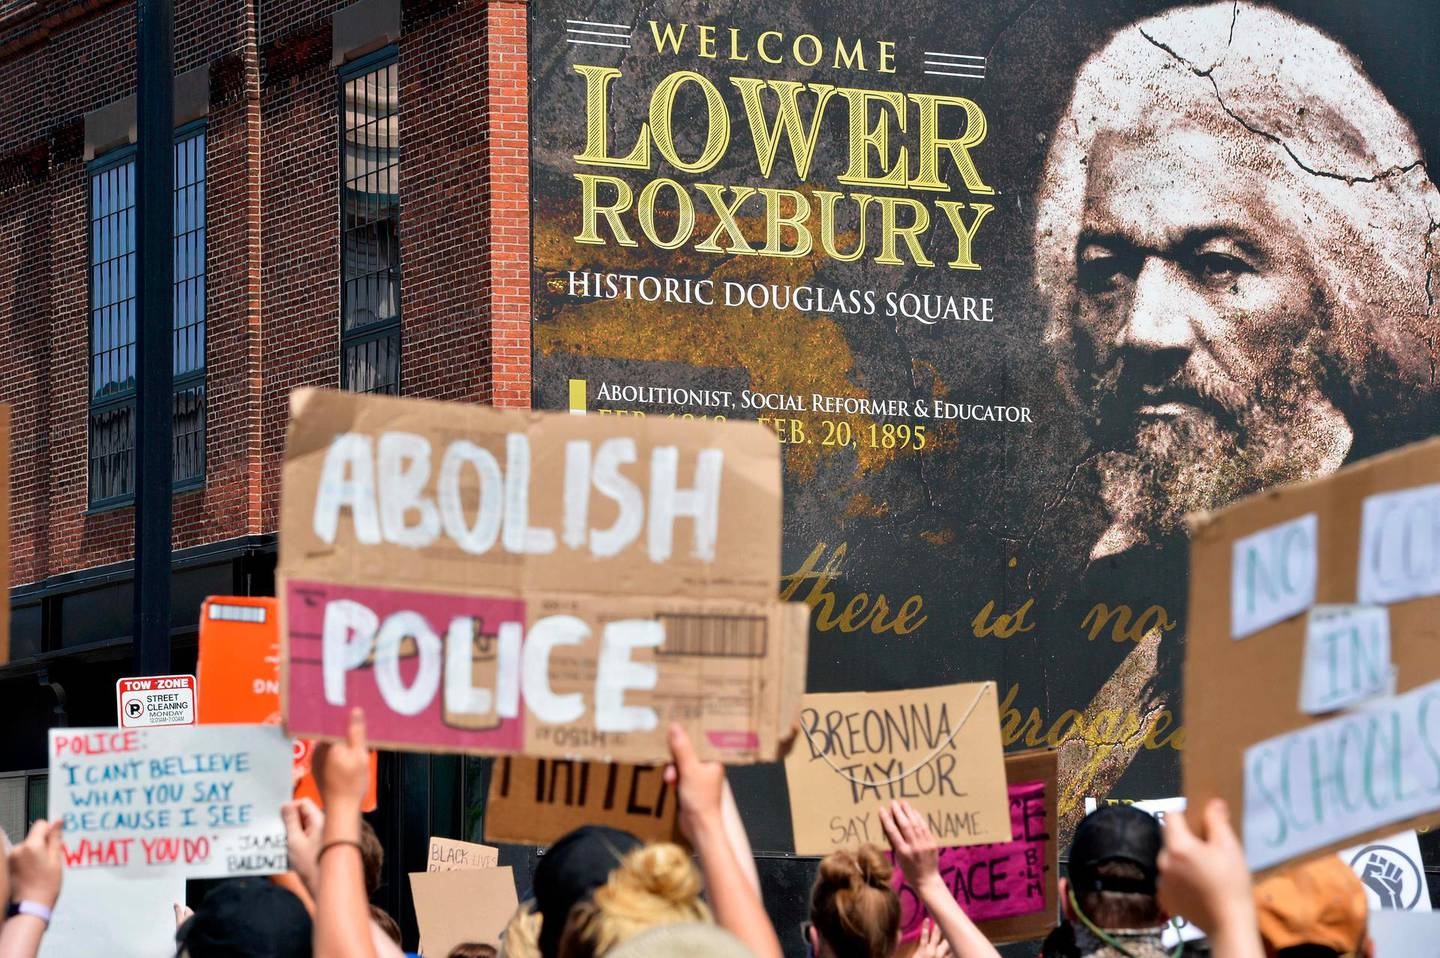 Protesters march by a photo of Frederick Douglas, a historic abolitionist, during a Juneteenth protest and march in honor of Rayshard Brooks and other victims of Police Violence in Boston, Massachusetts on June 22, 2020. / AFP / Joseph Prezioso